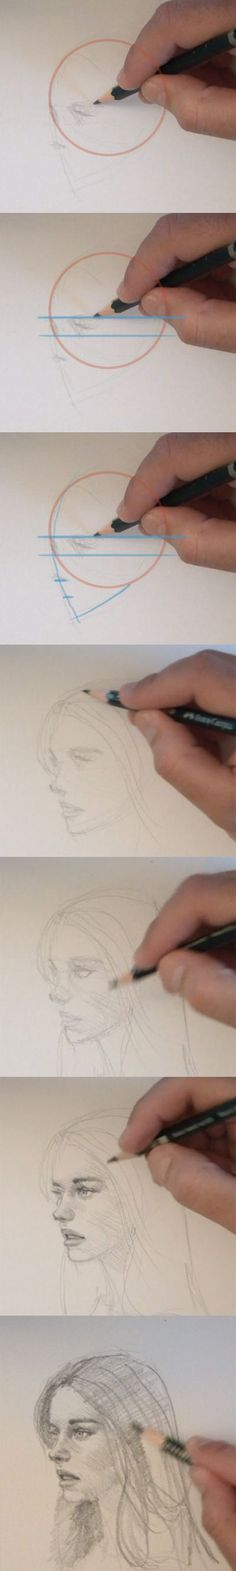 learn to draw people face: